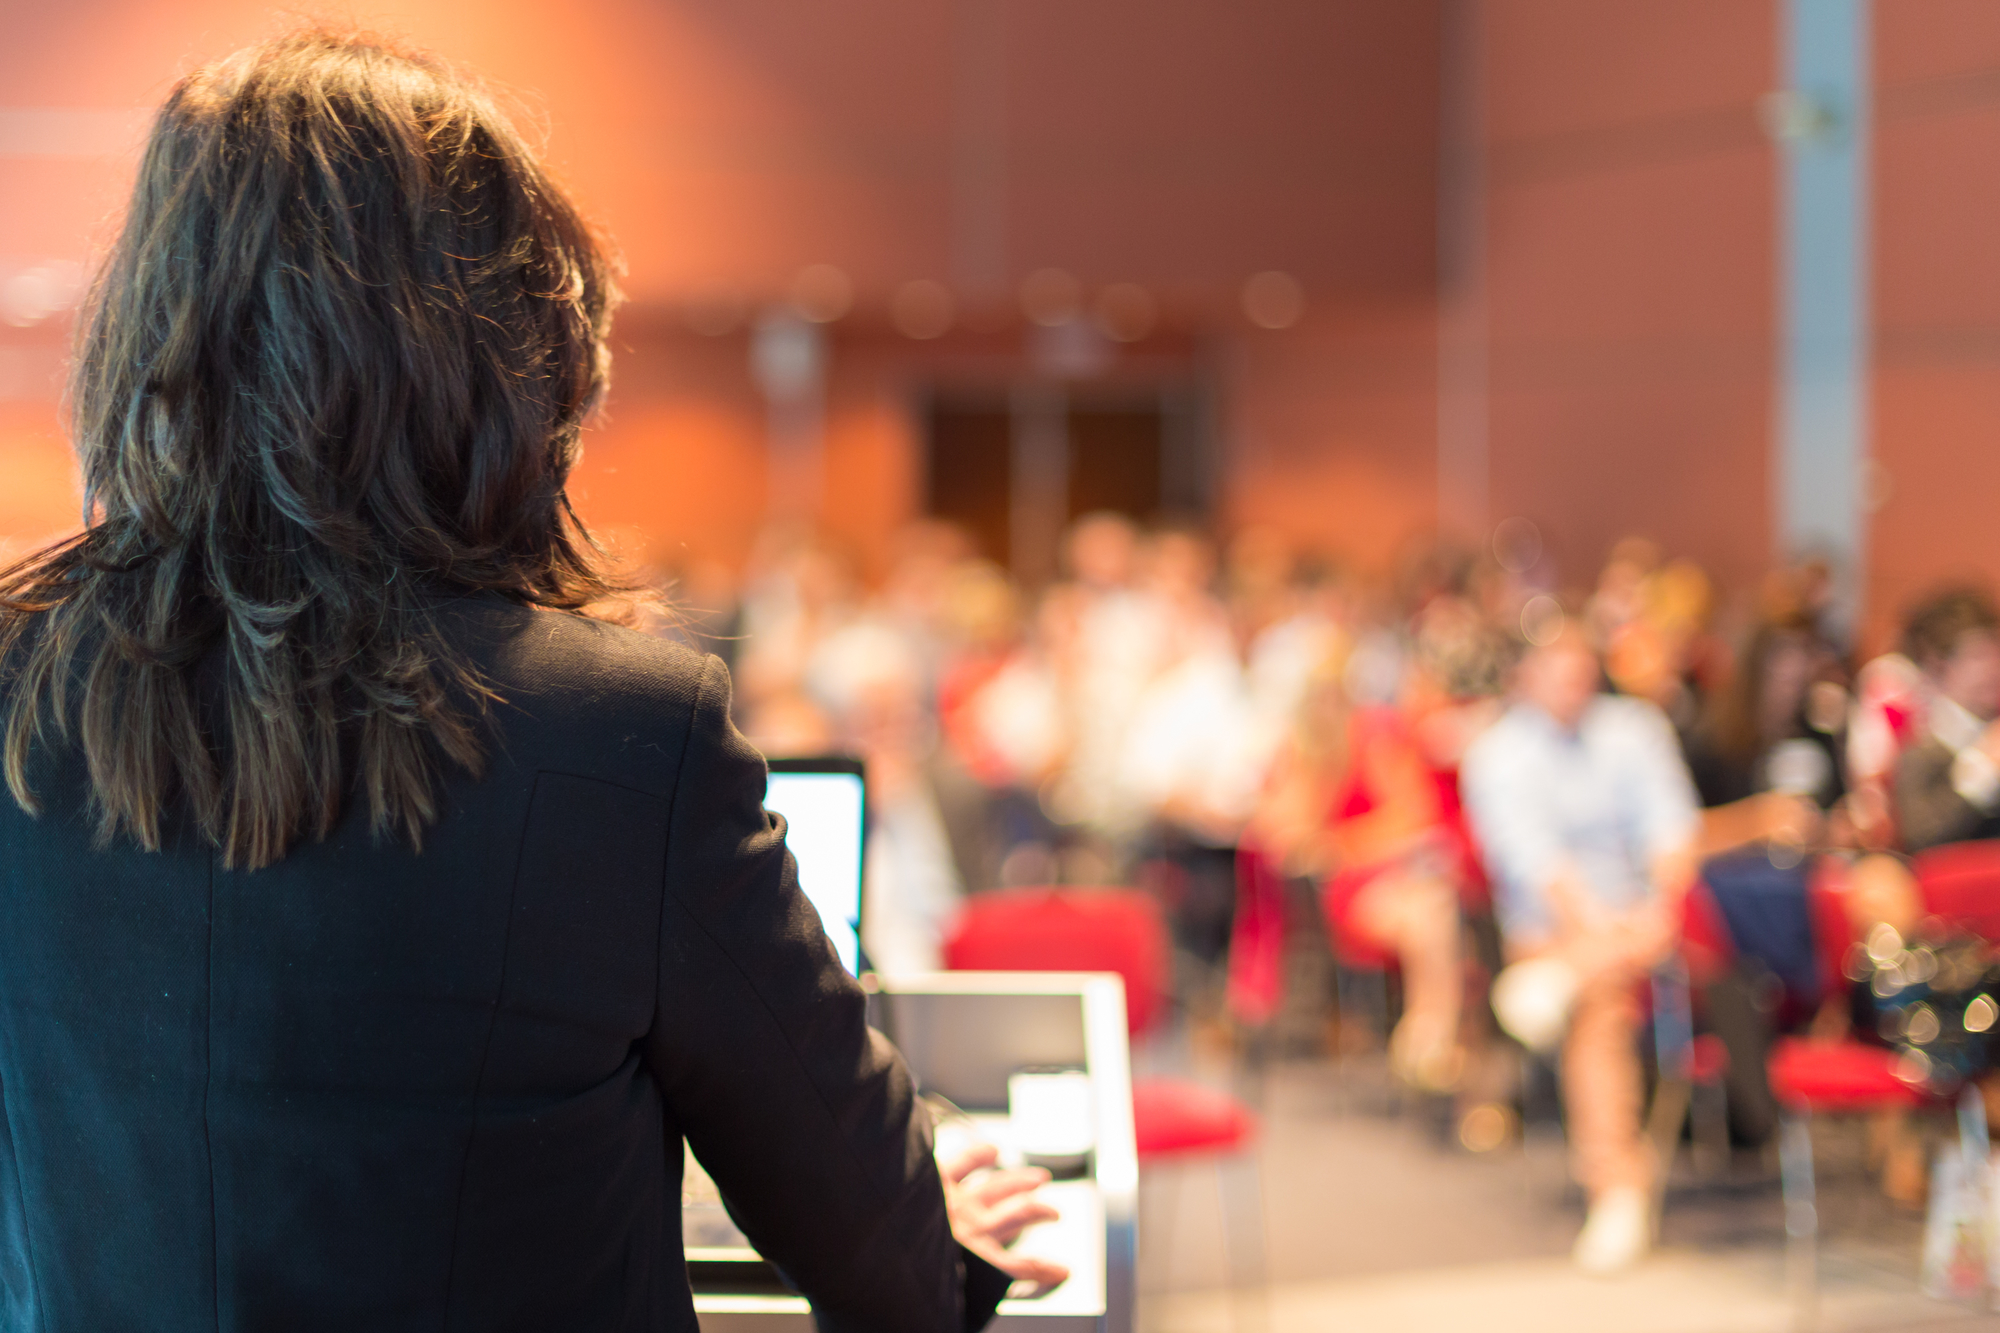 Dark-haired woman with her back to the camera stands at podium facing blurry crowd of people sitting in red chairs